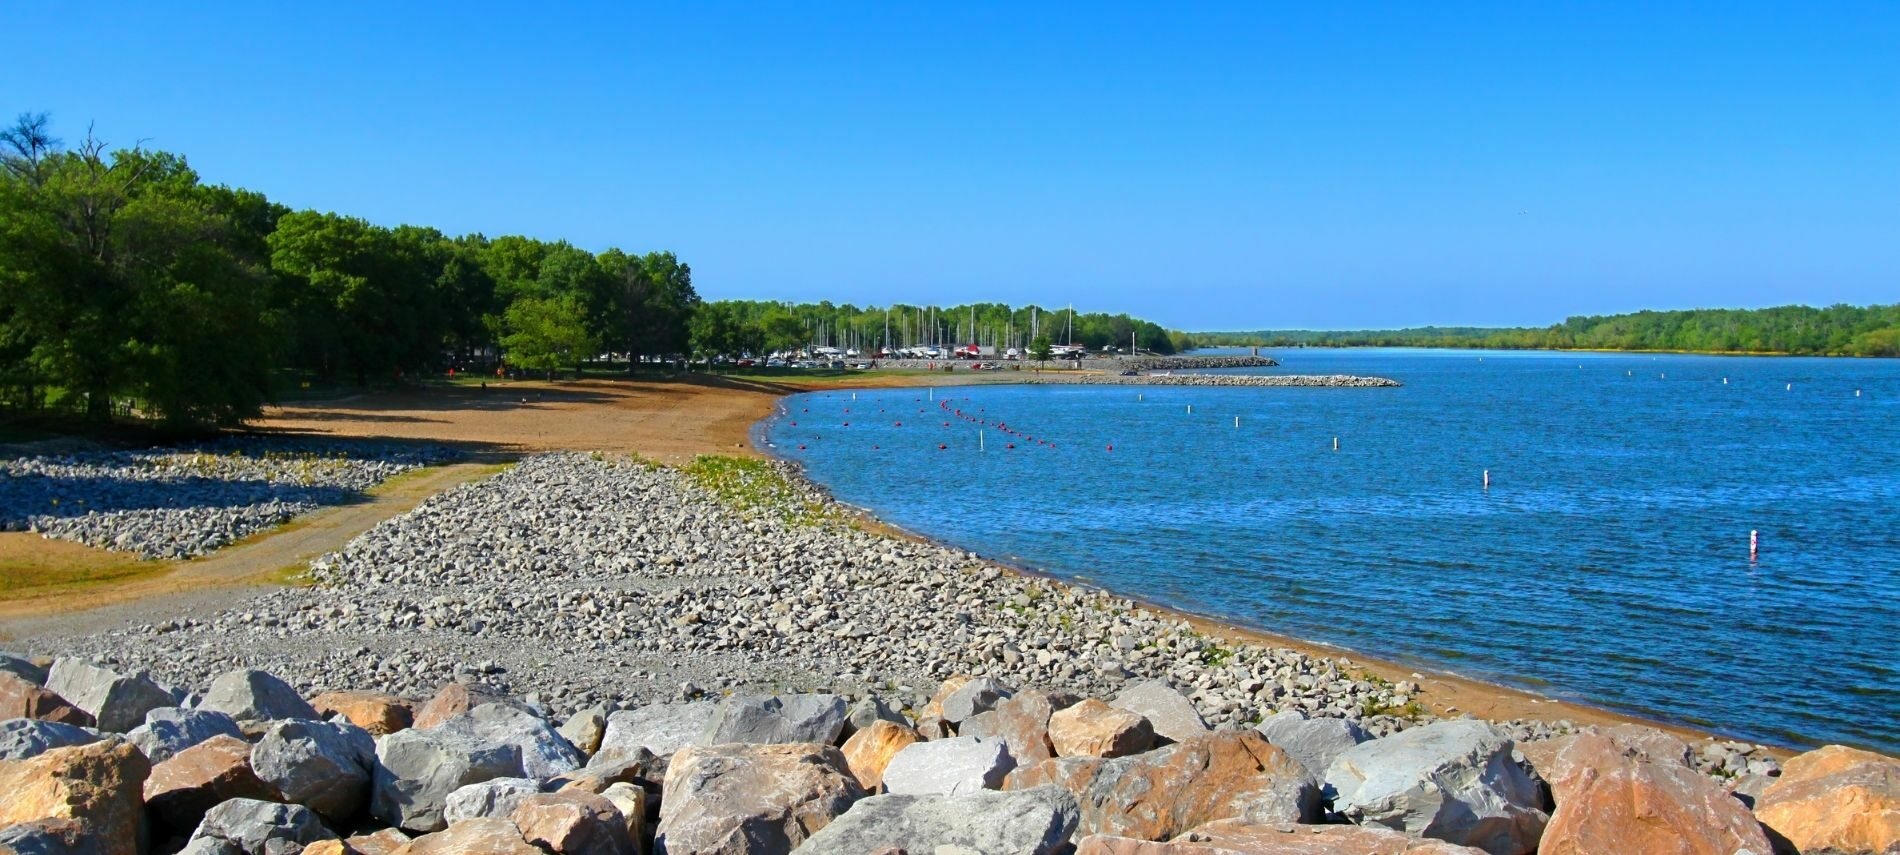 Beautiful view of Lake Carlyle with rocky shore and sailboats in the distance